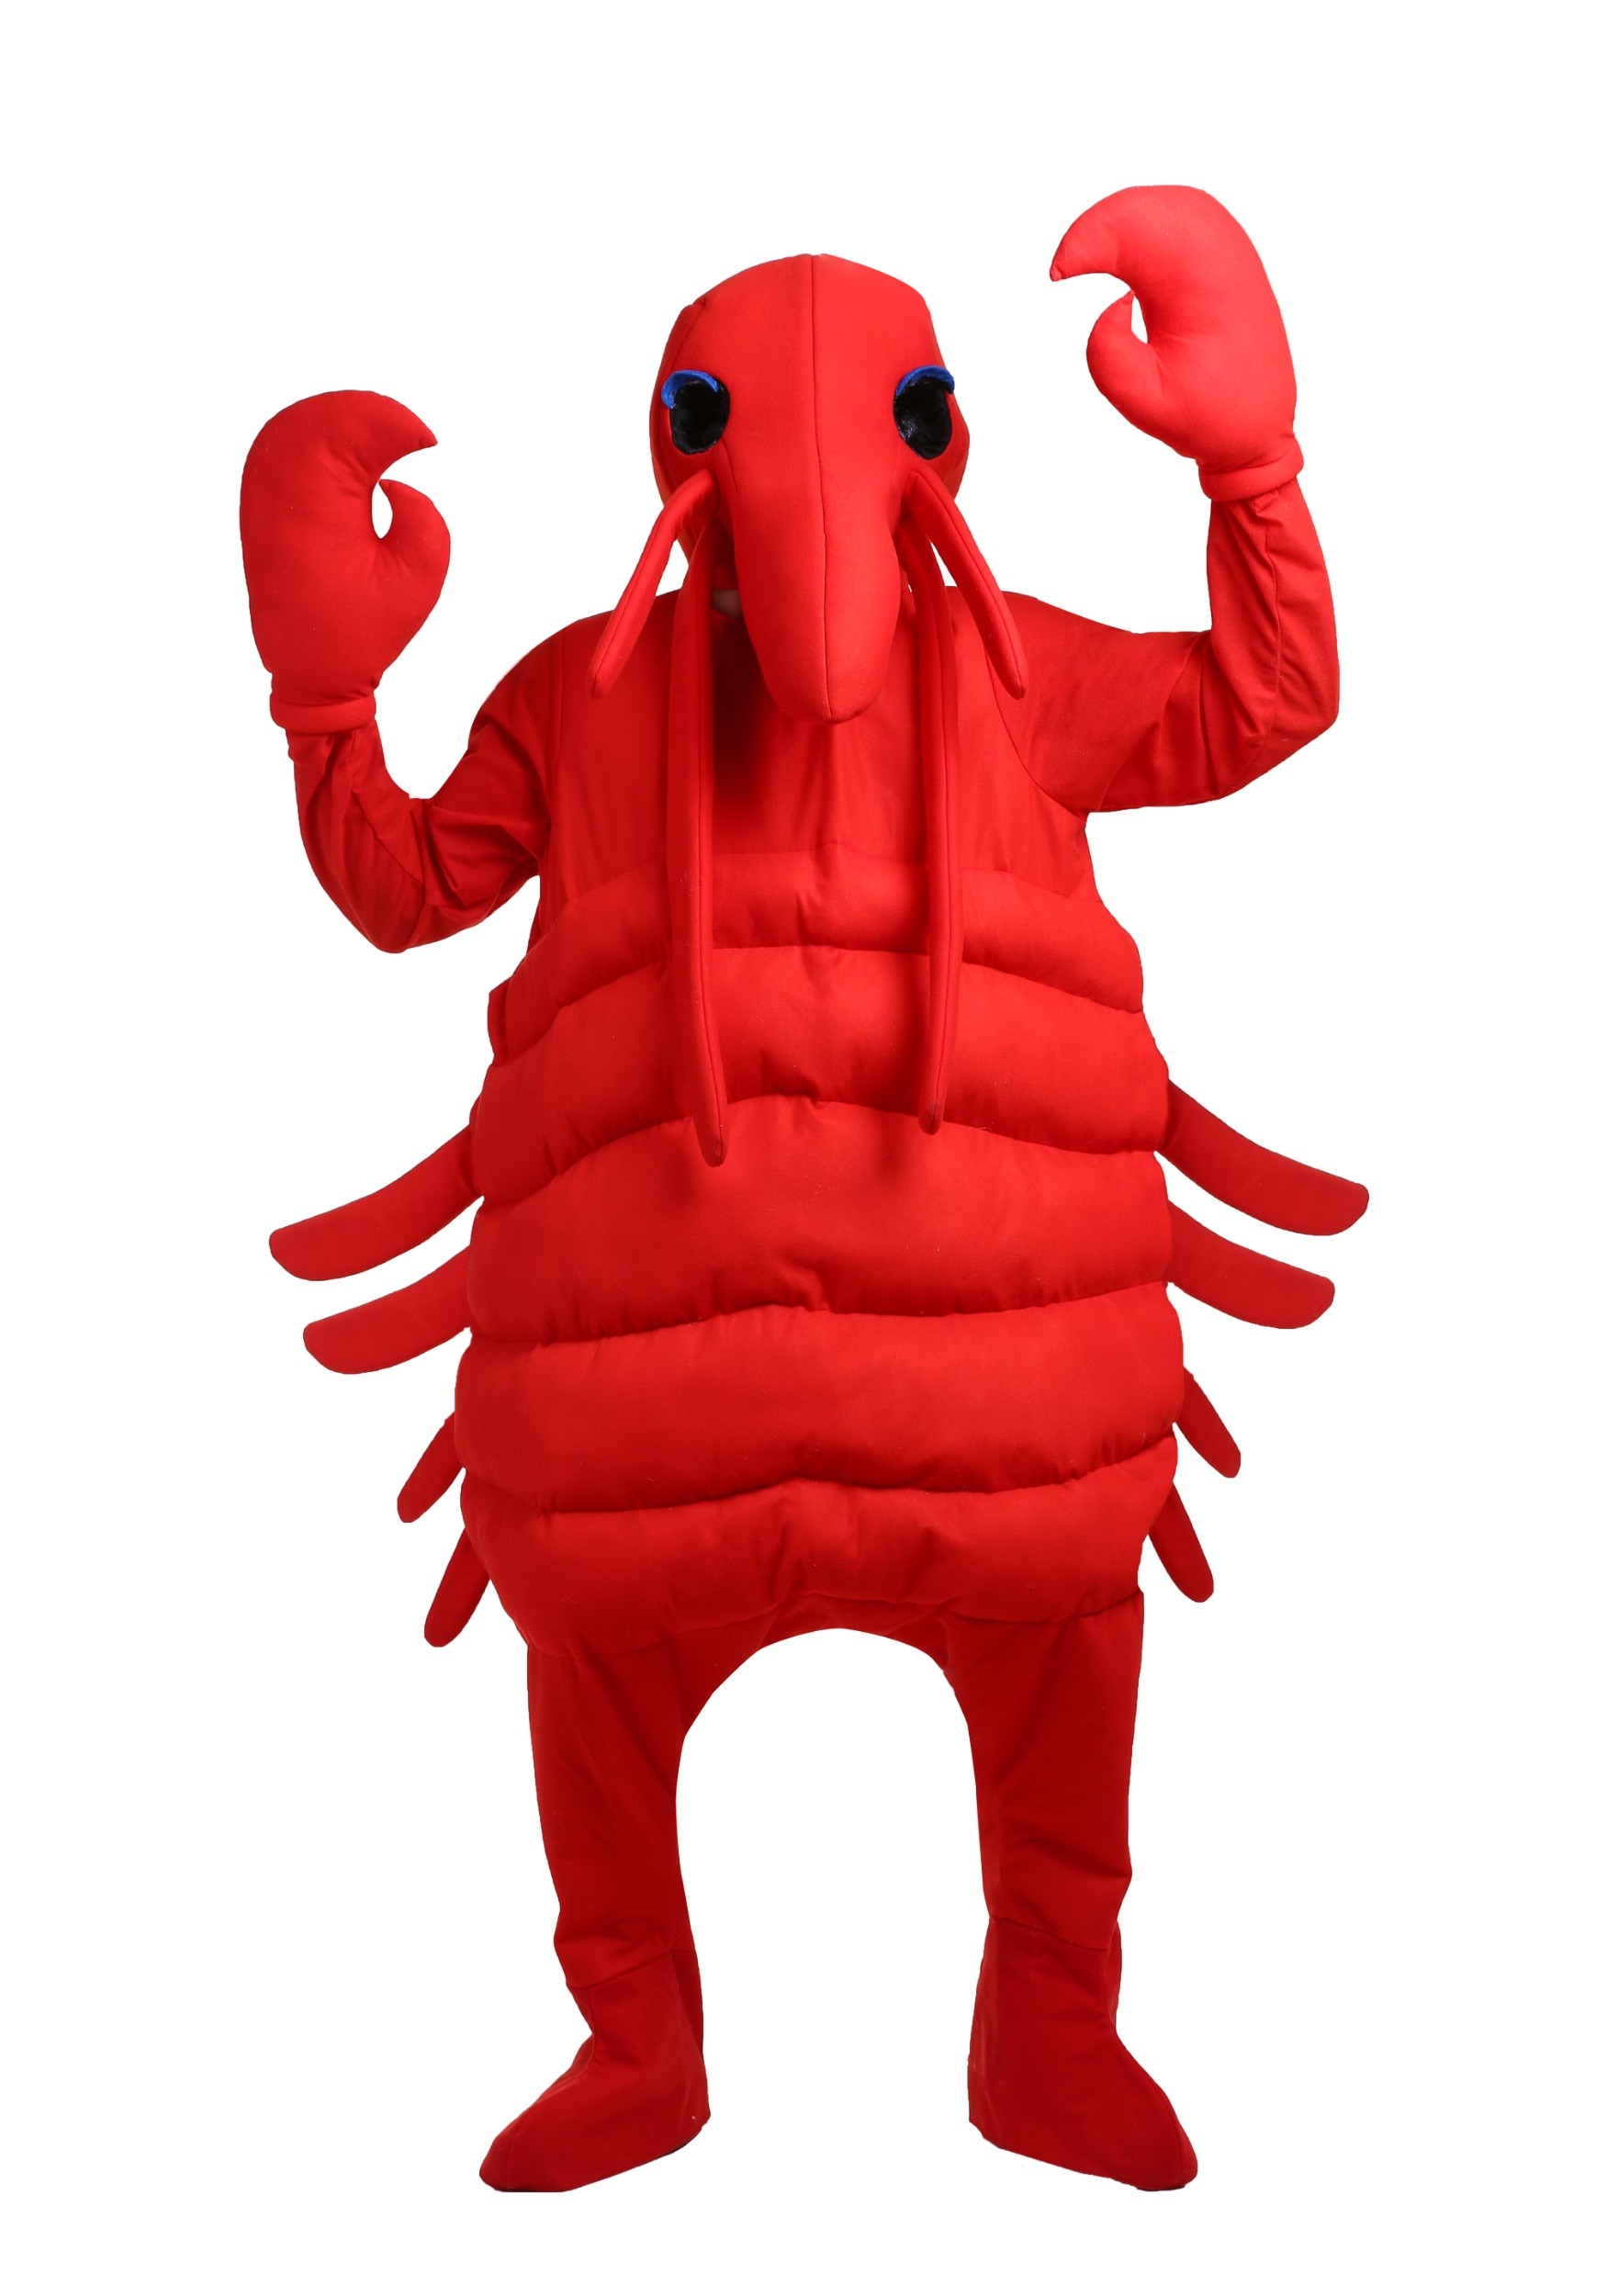 Willyums Weird Takes: Lobsters are Aliens